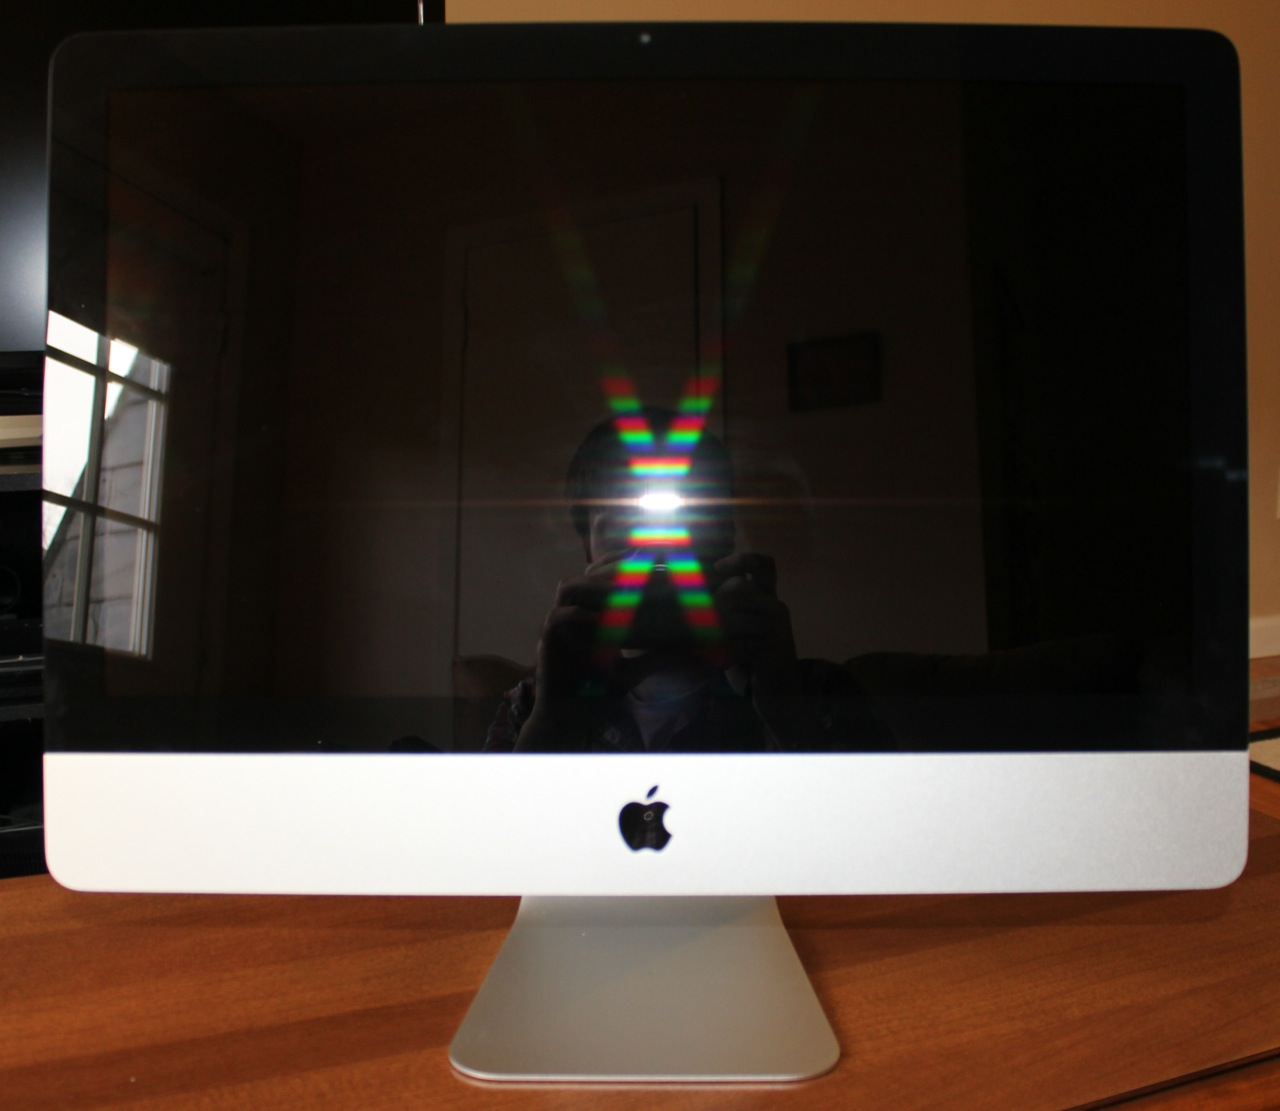 I popped open my camera's flash and took a couple of pictures to compare screen glare—the 2011 iMac, shown here, is quite reflective.